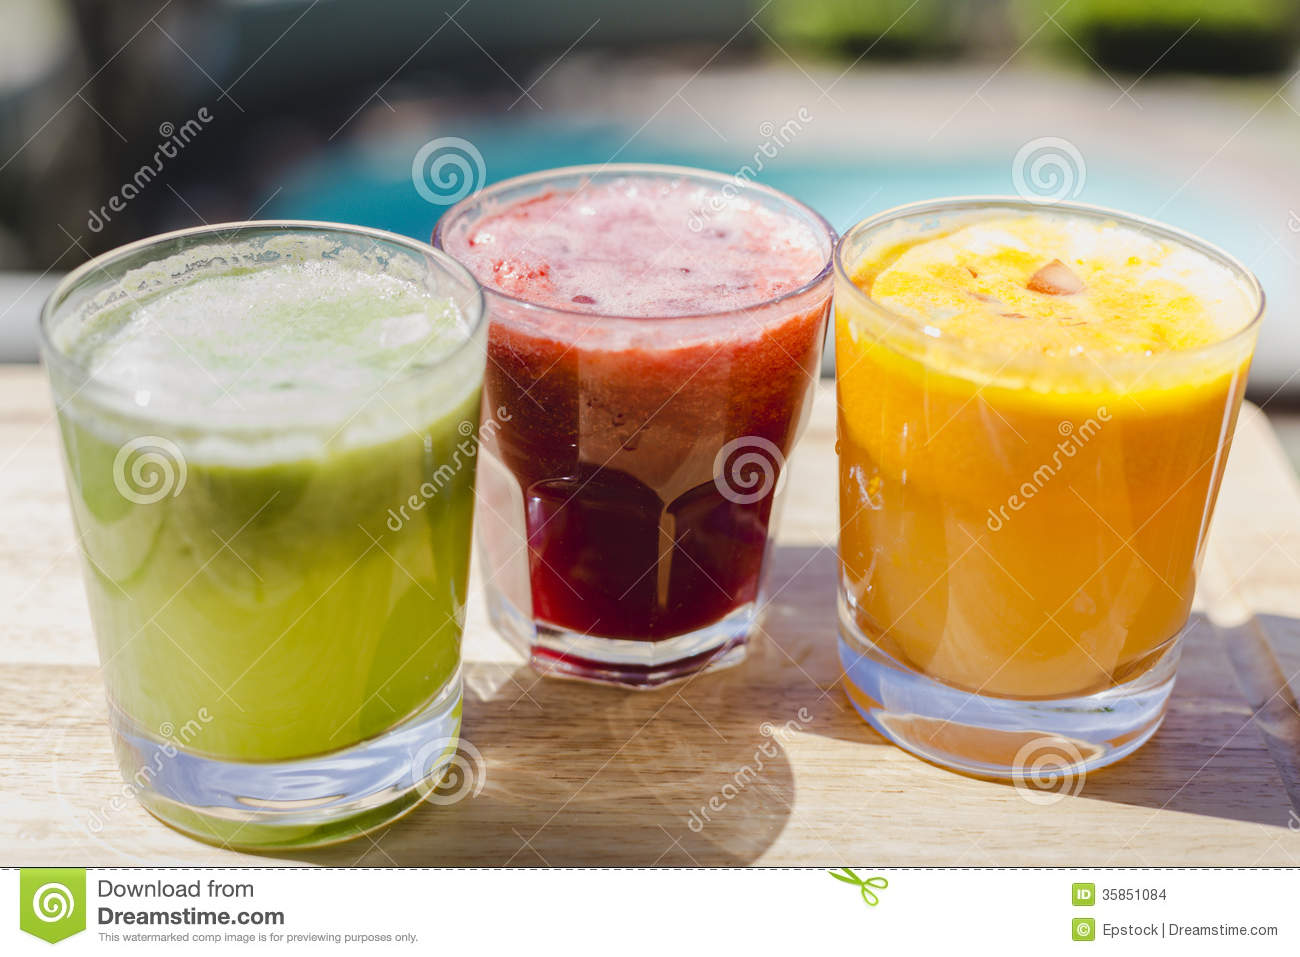 Tumbler Glas Yellow, Green And Red Fruit And Vegetable Juices In